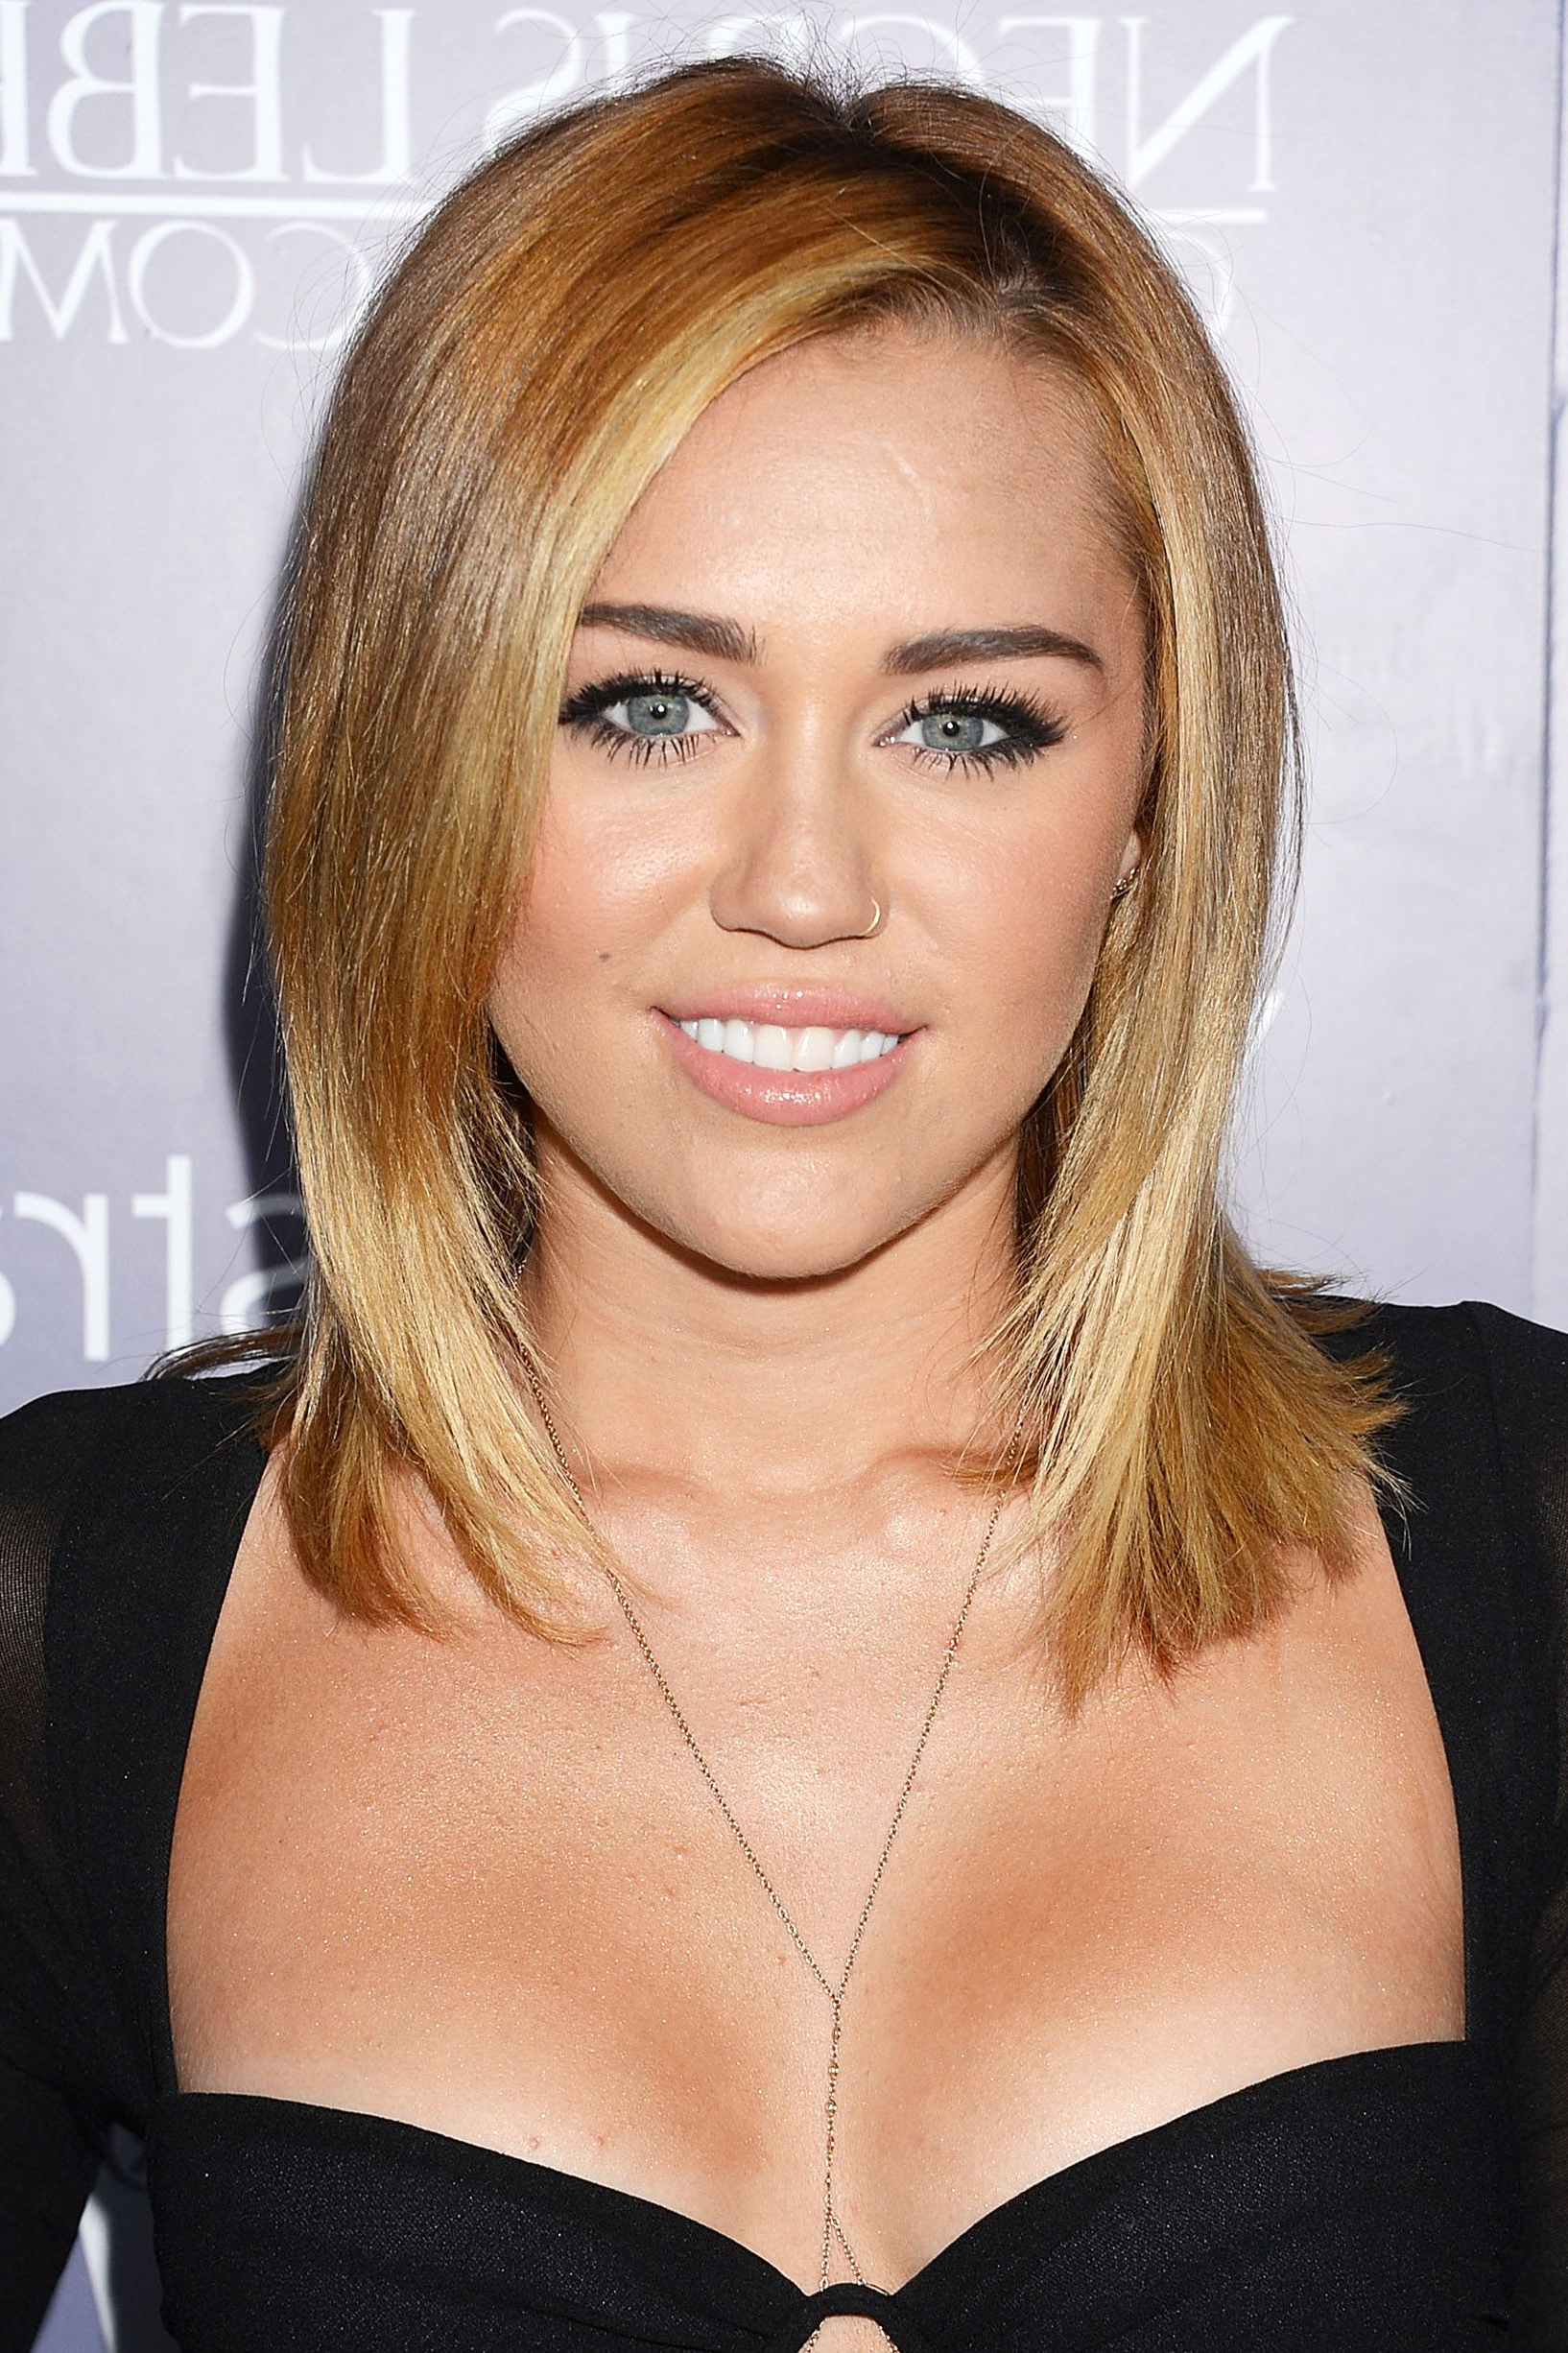 Miley Cyrus' Best Hairstyles Of All Time – 66 Miley Cyrus Hair Cuts Within Miley Cyrus Short Hairstyles (View 14 of 25)